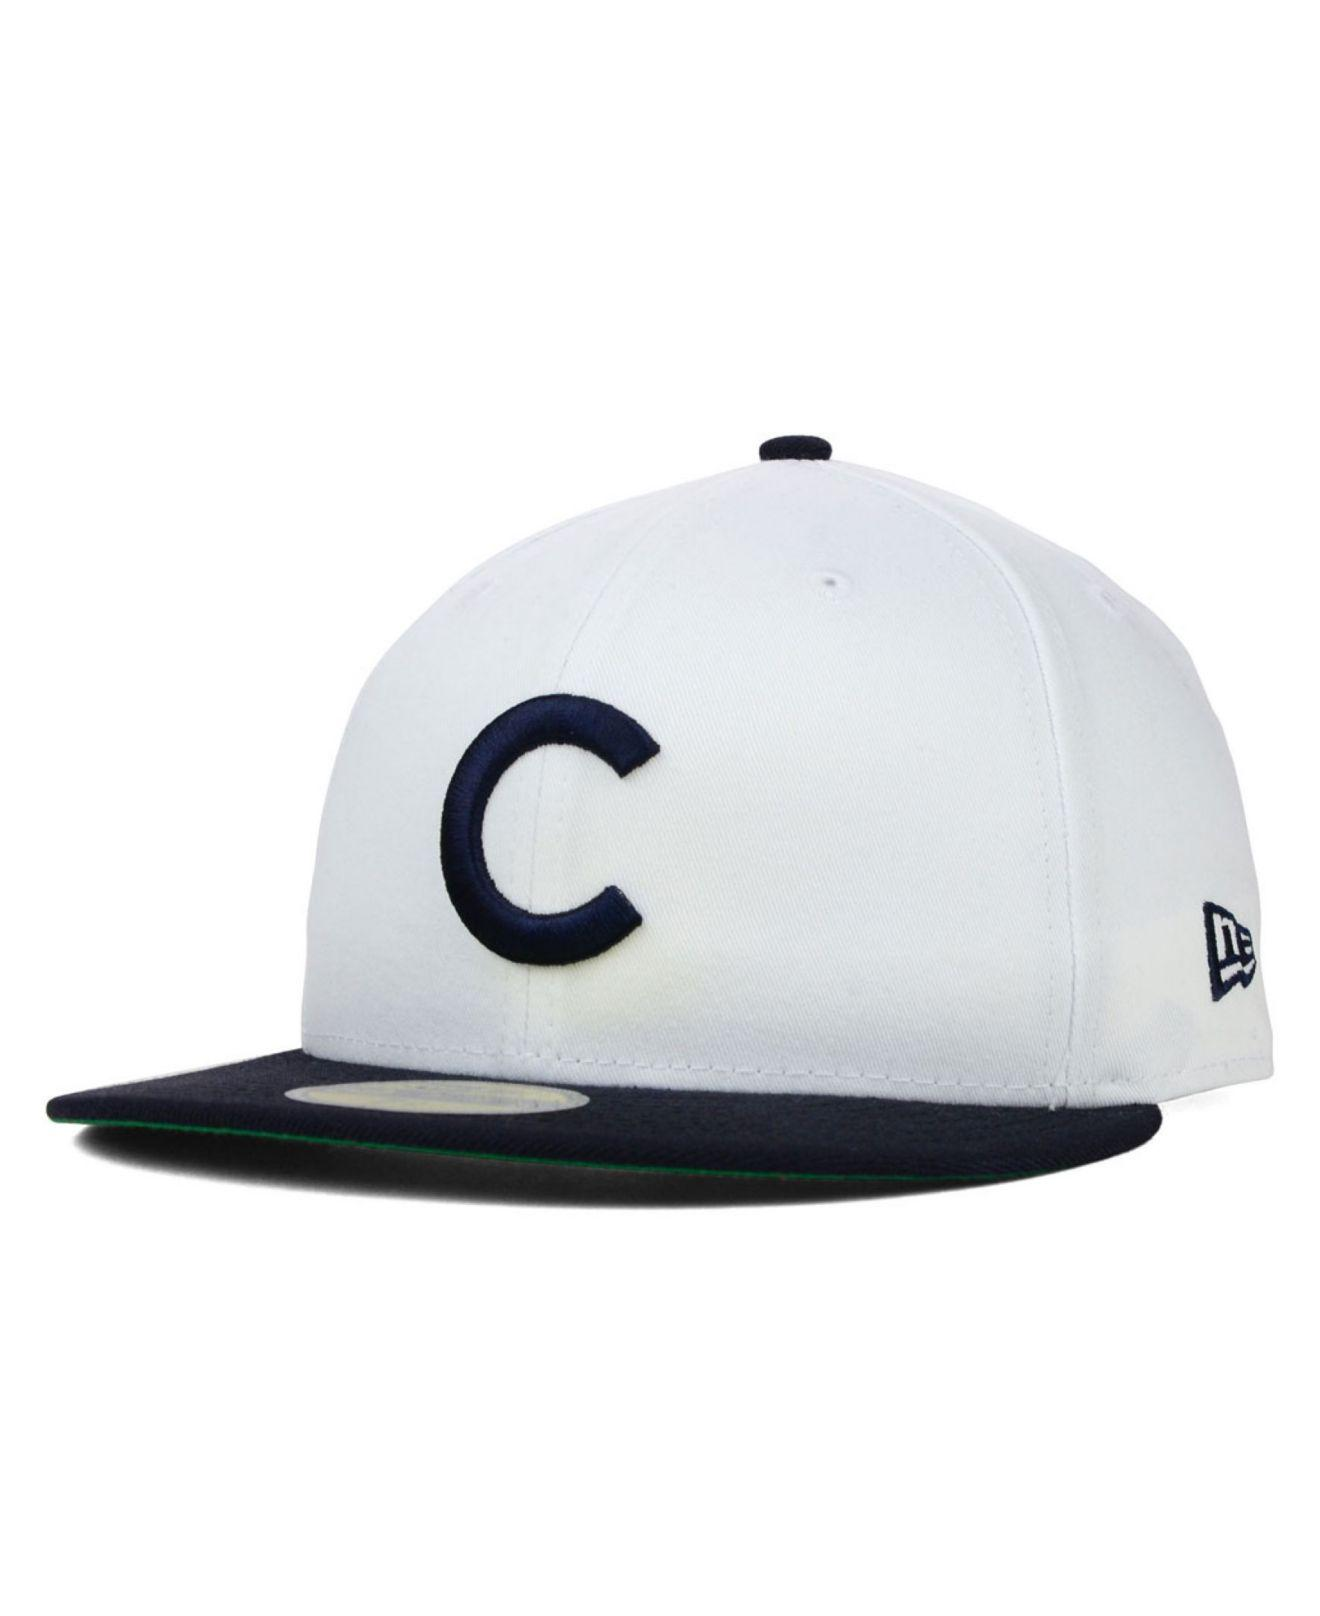 fb8bba0fbd9 Lyst - KTZ Chicago Cubs Mlb Cooperstown 59fifty Cap in White for Men